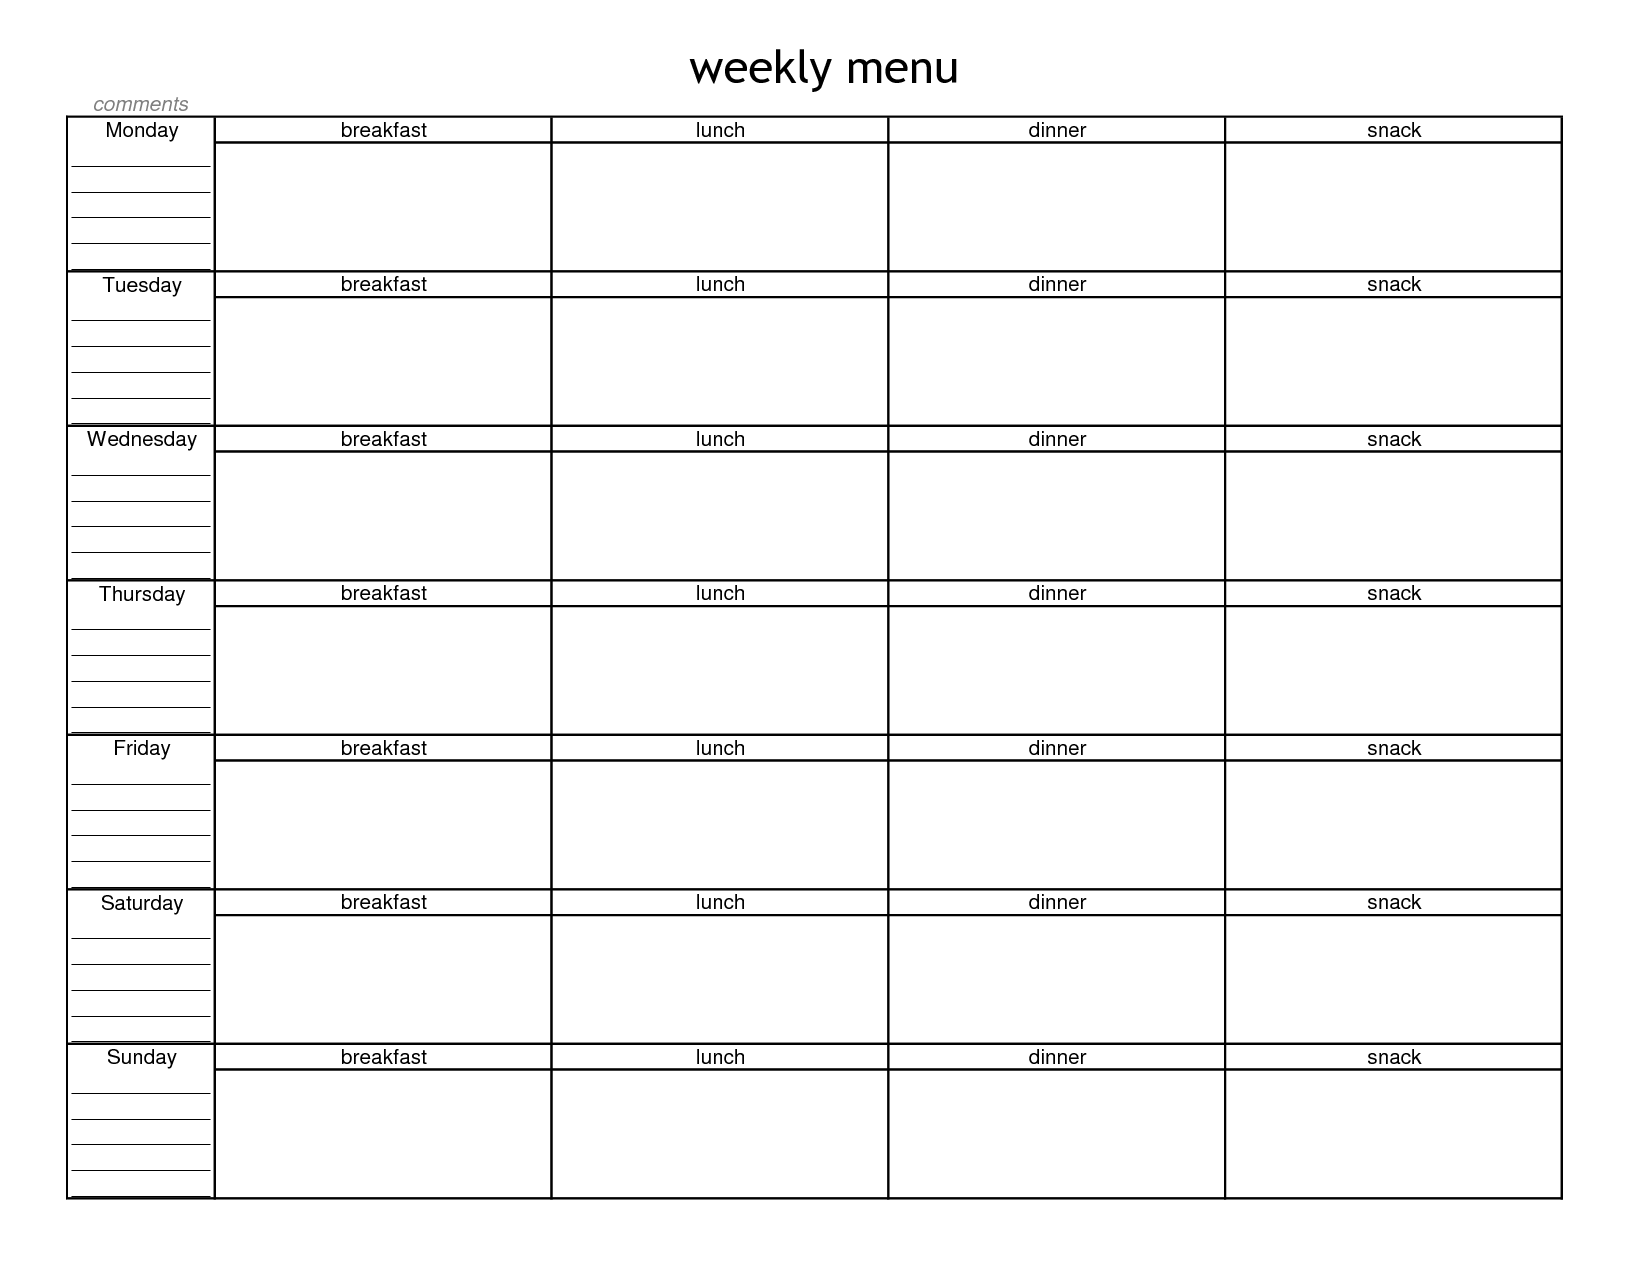 weekly lunch menu template - blank weekly menu planner template menu planning